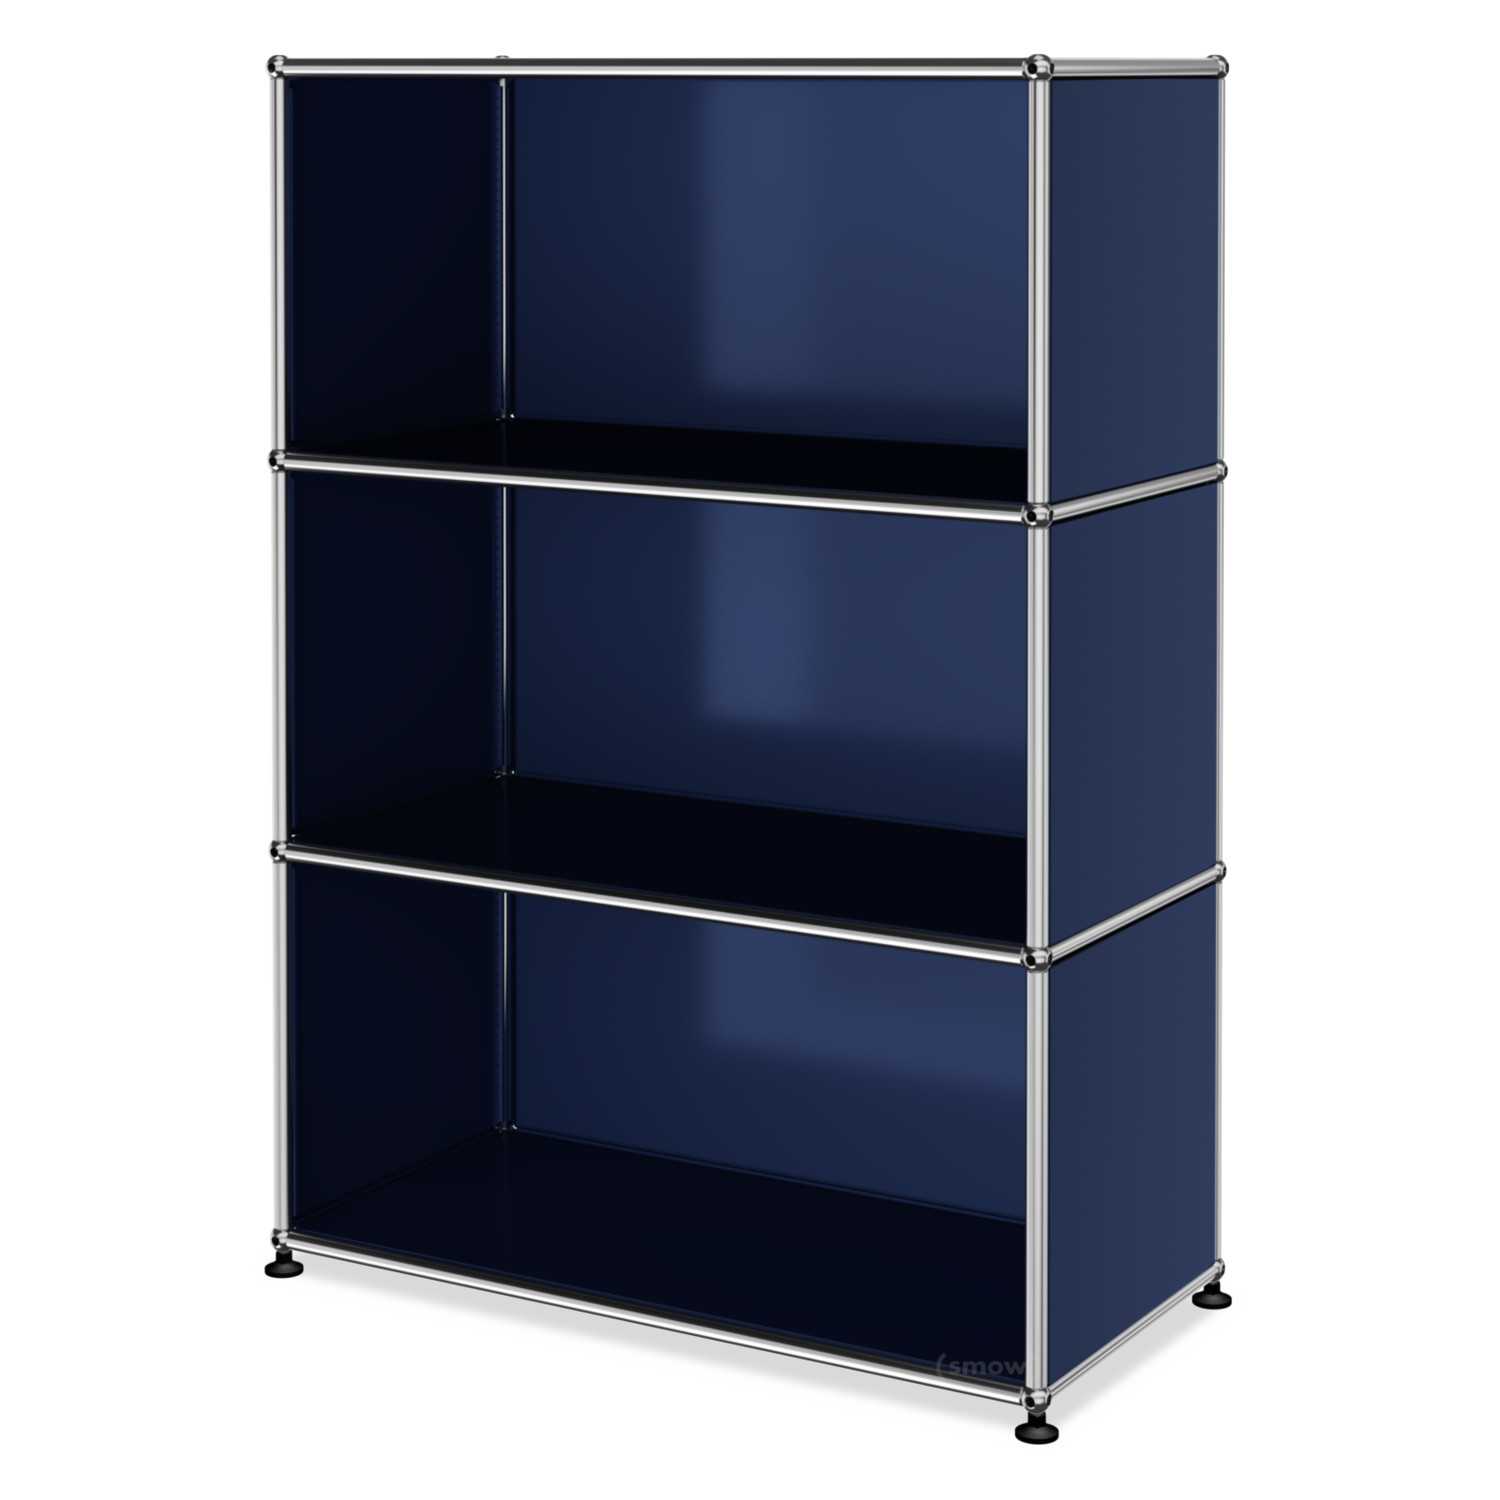 usm haller highboard m offen stahlblau ral 5011 von fritz haller paul sch rer designerm bel. Black Bedroom Furniture Sets. Home Design Ideas